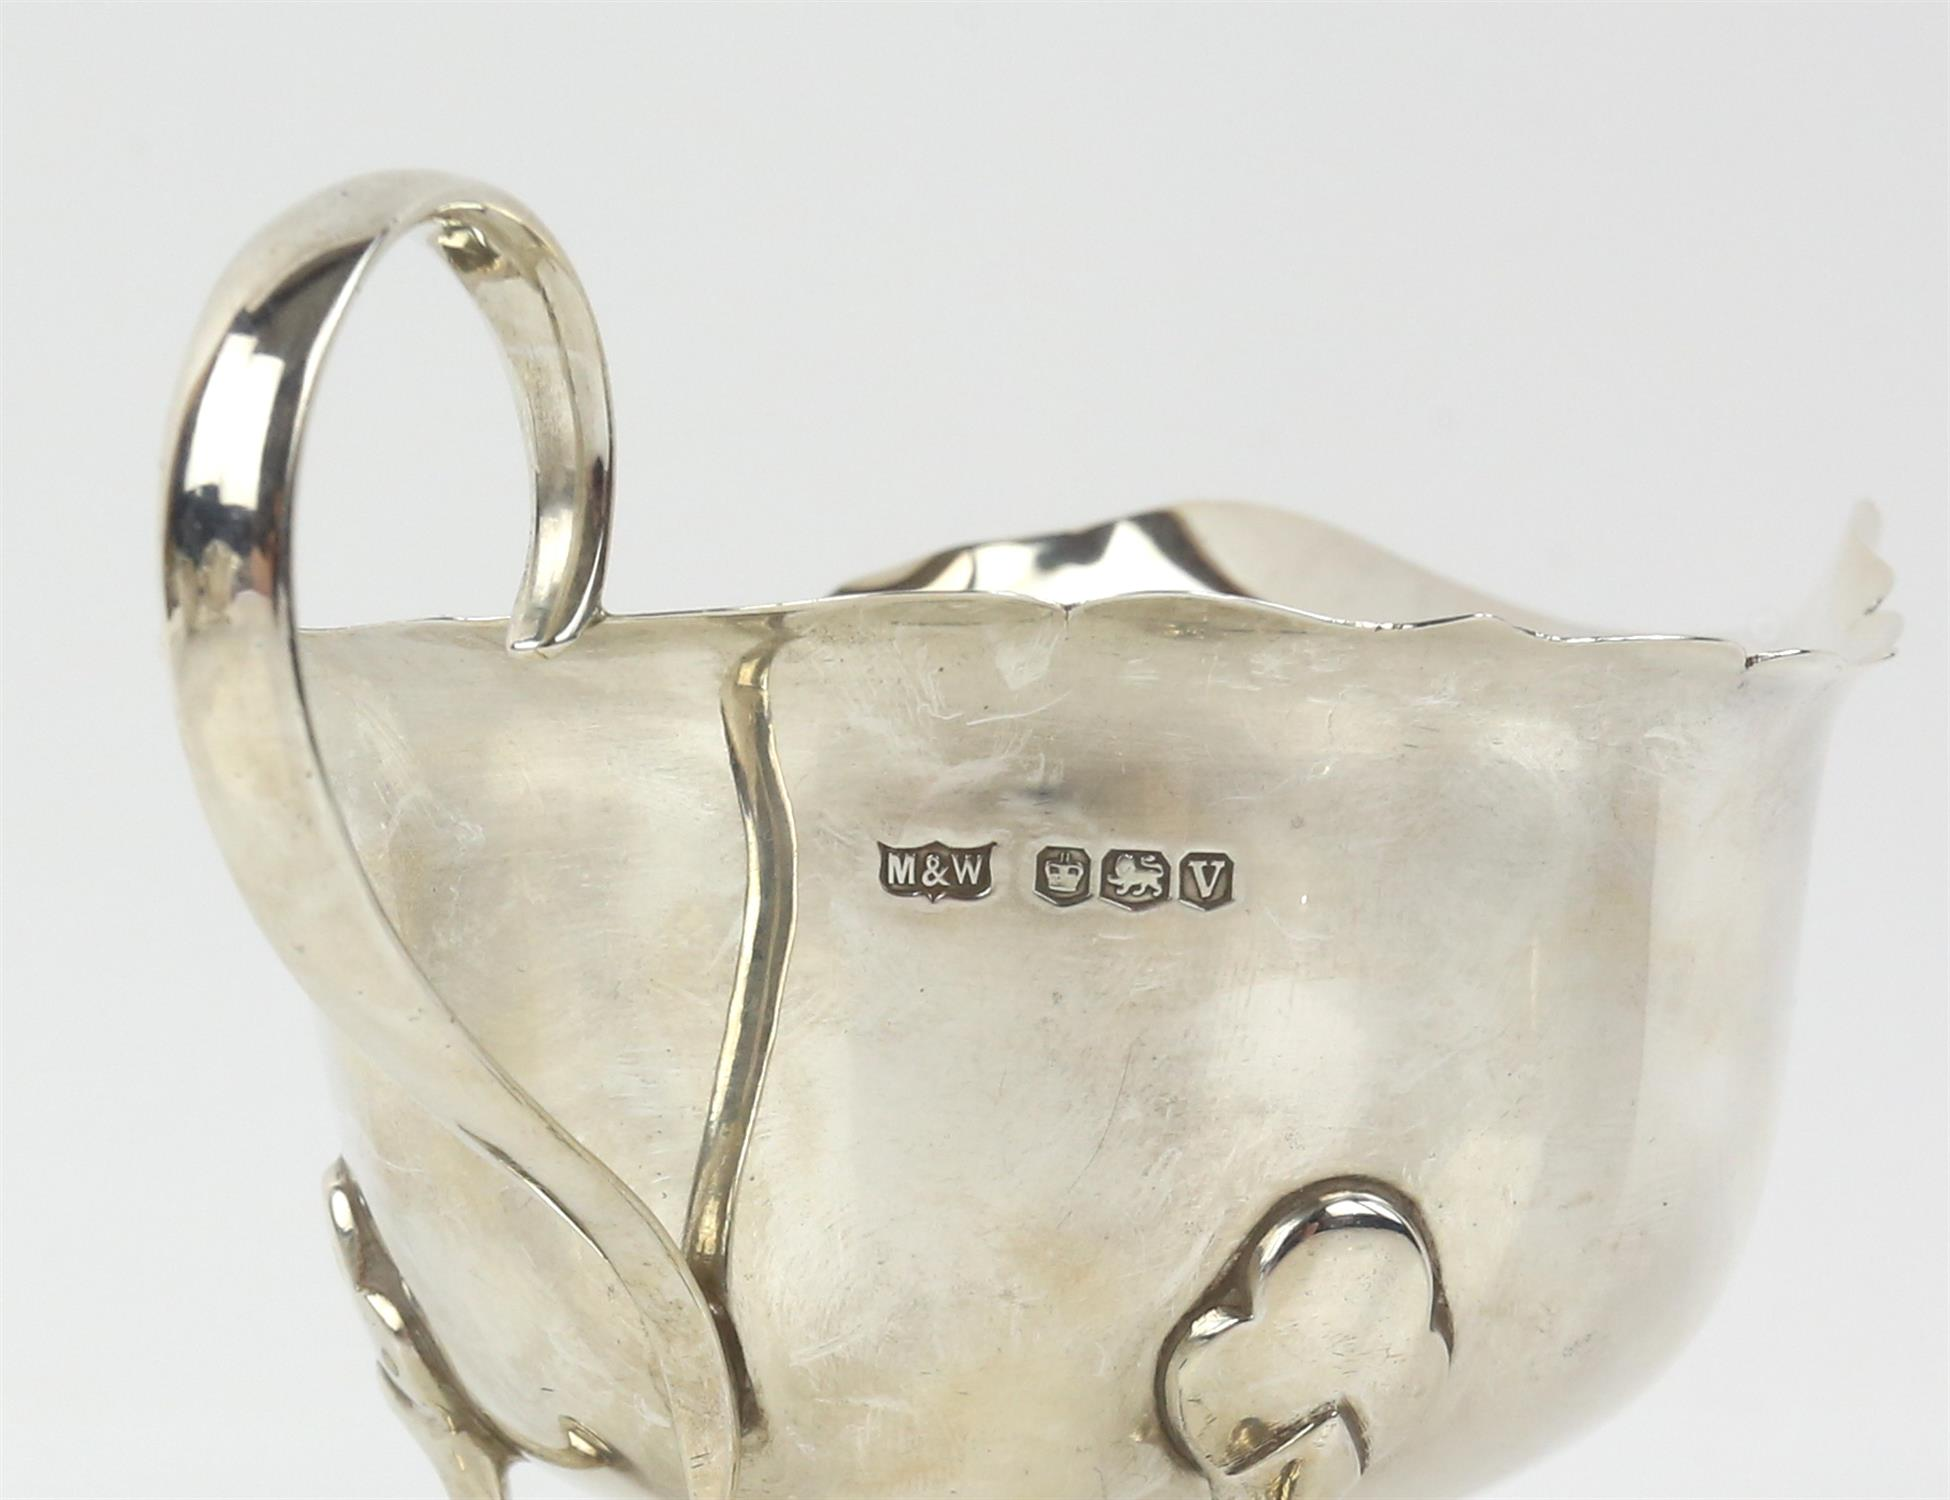 Pair of George VI silver sauceboats with serpentine rims on hoof feet, by Mappin & Webb, Sheffield, - Image 5 of 6